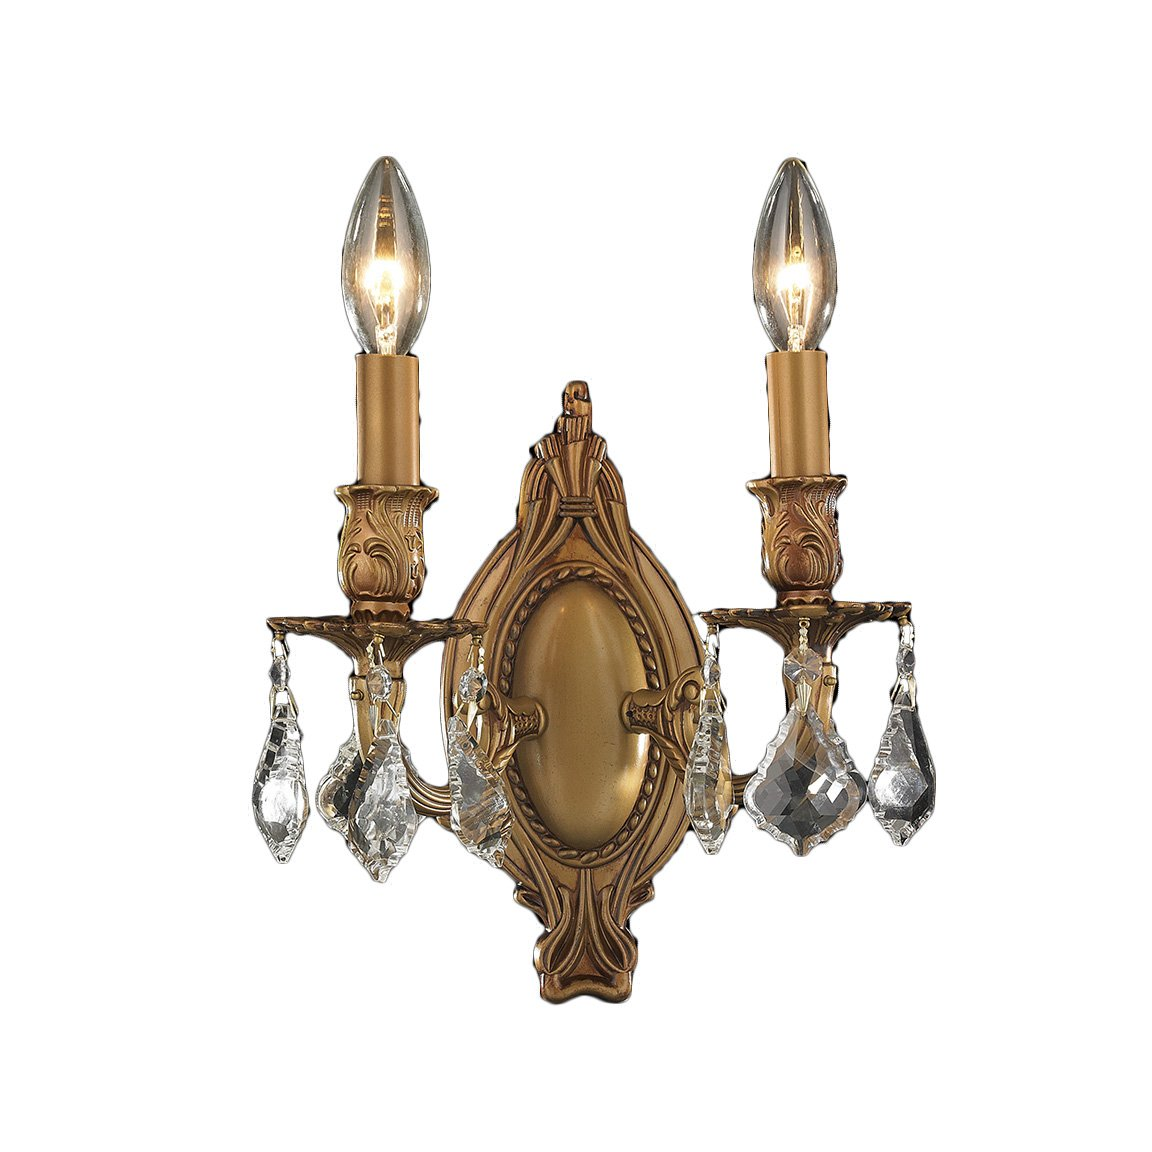 Worldwide Lighting Windsor Collection 2 Light French Gold Finish Crystal Candle Wall Sconce 9'' W x 10.5'' H Medium